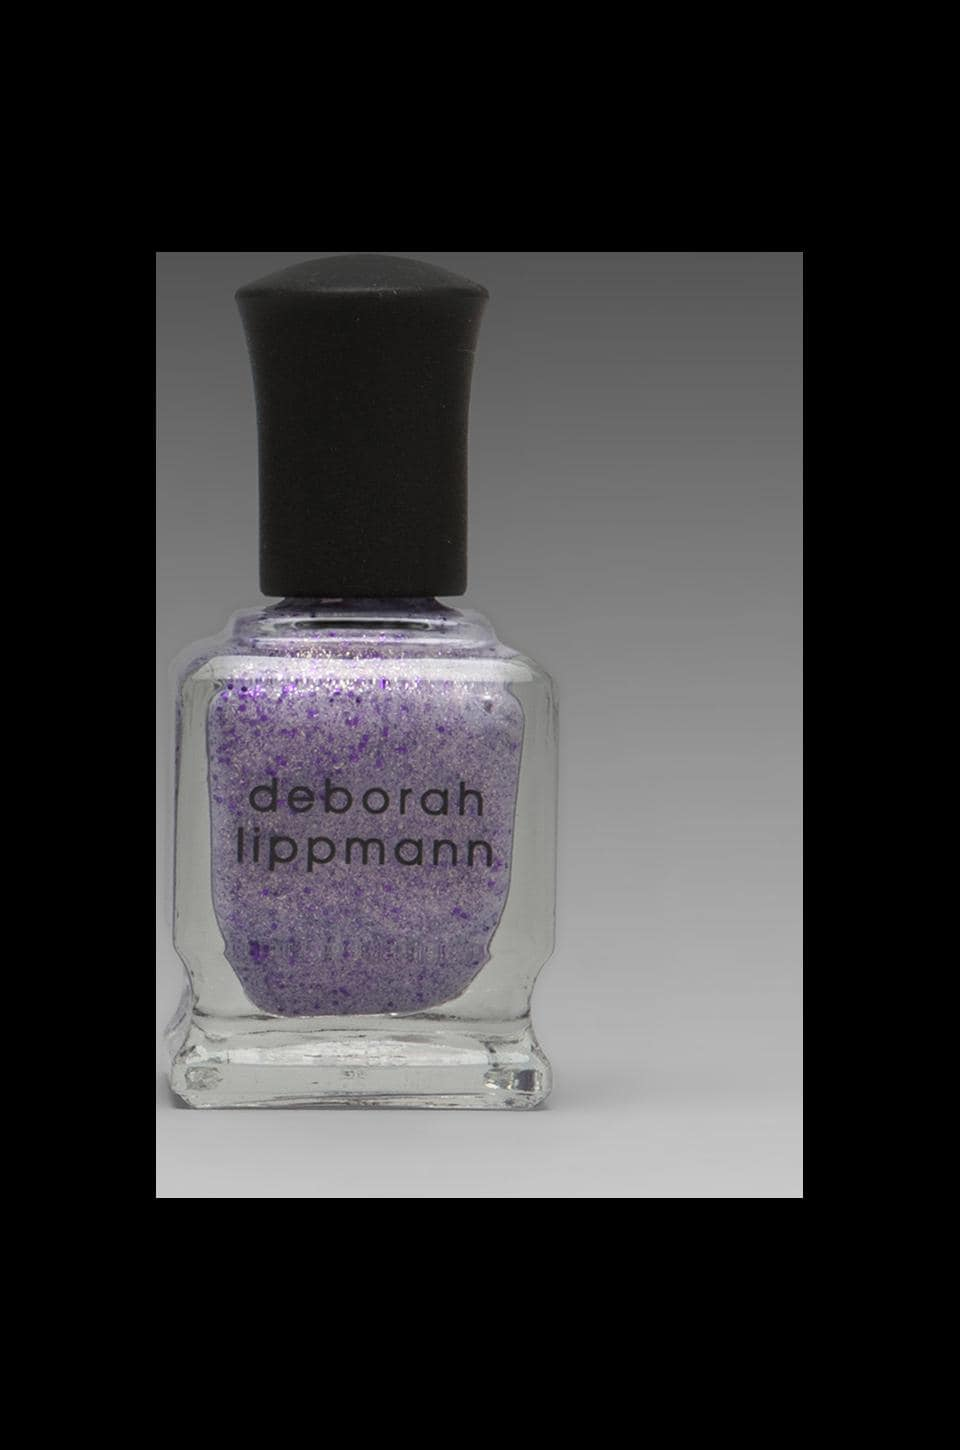 Deborah Lippmann Nail Lacquer in Do The Mermaid